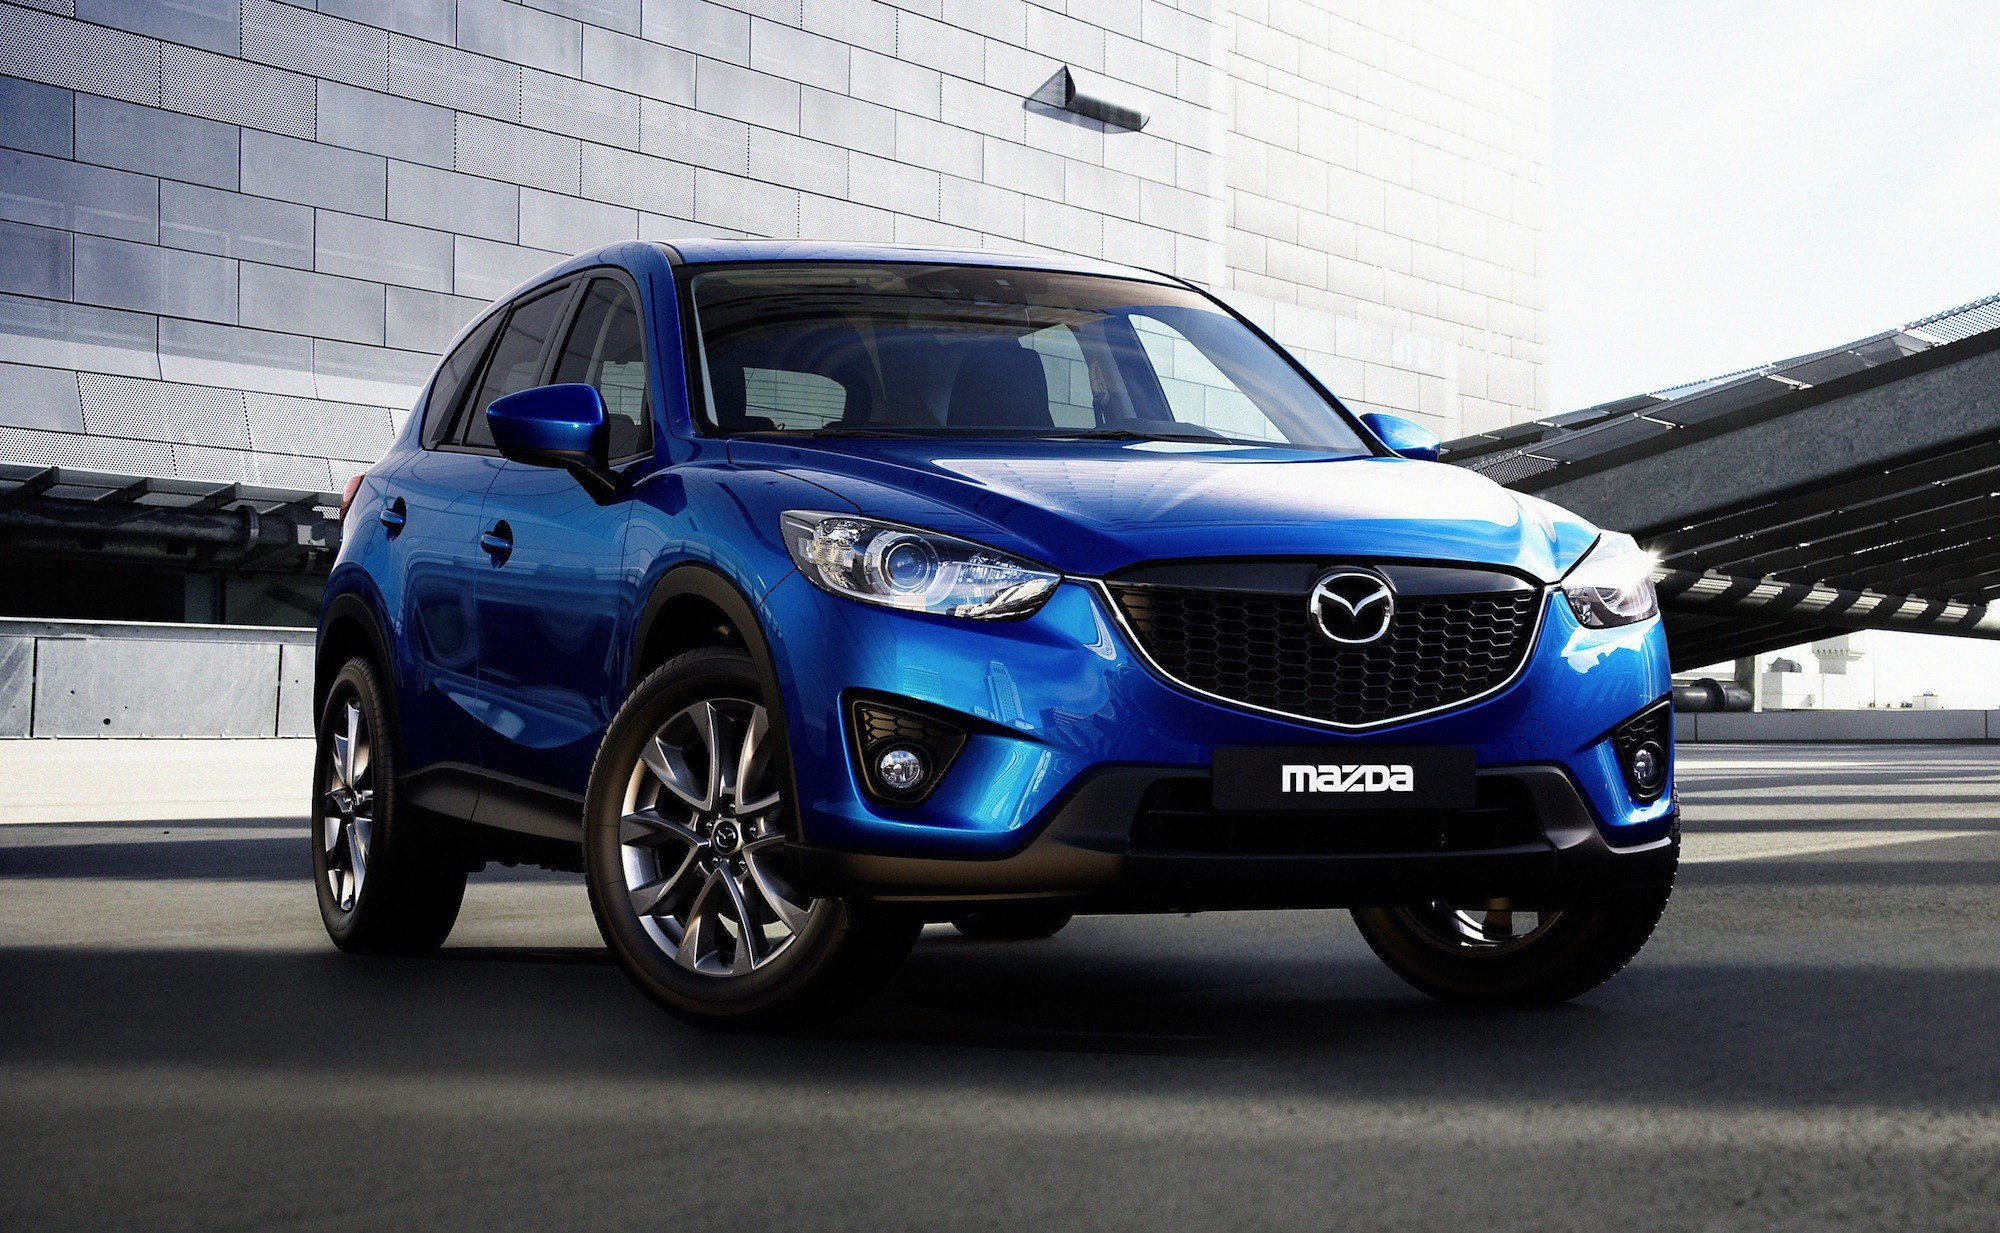 Latest Mazda Suv And Passenger Car Range All Skyactiv By 2016 Free Download